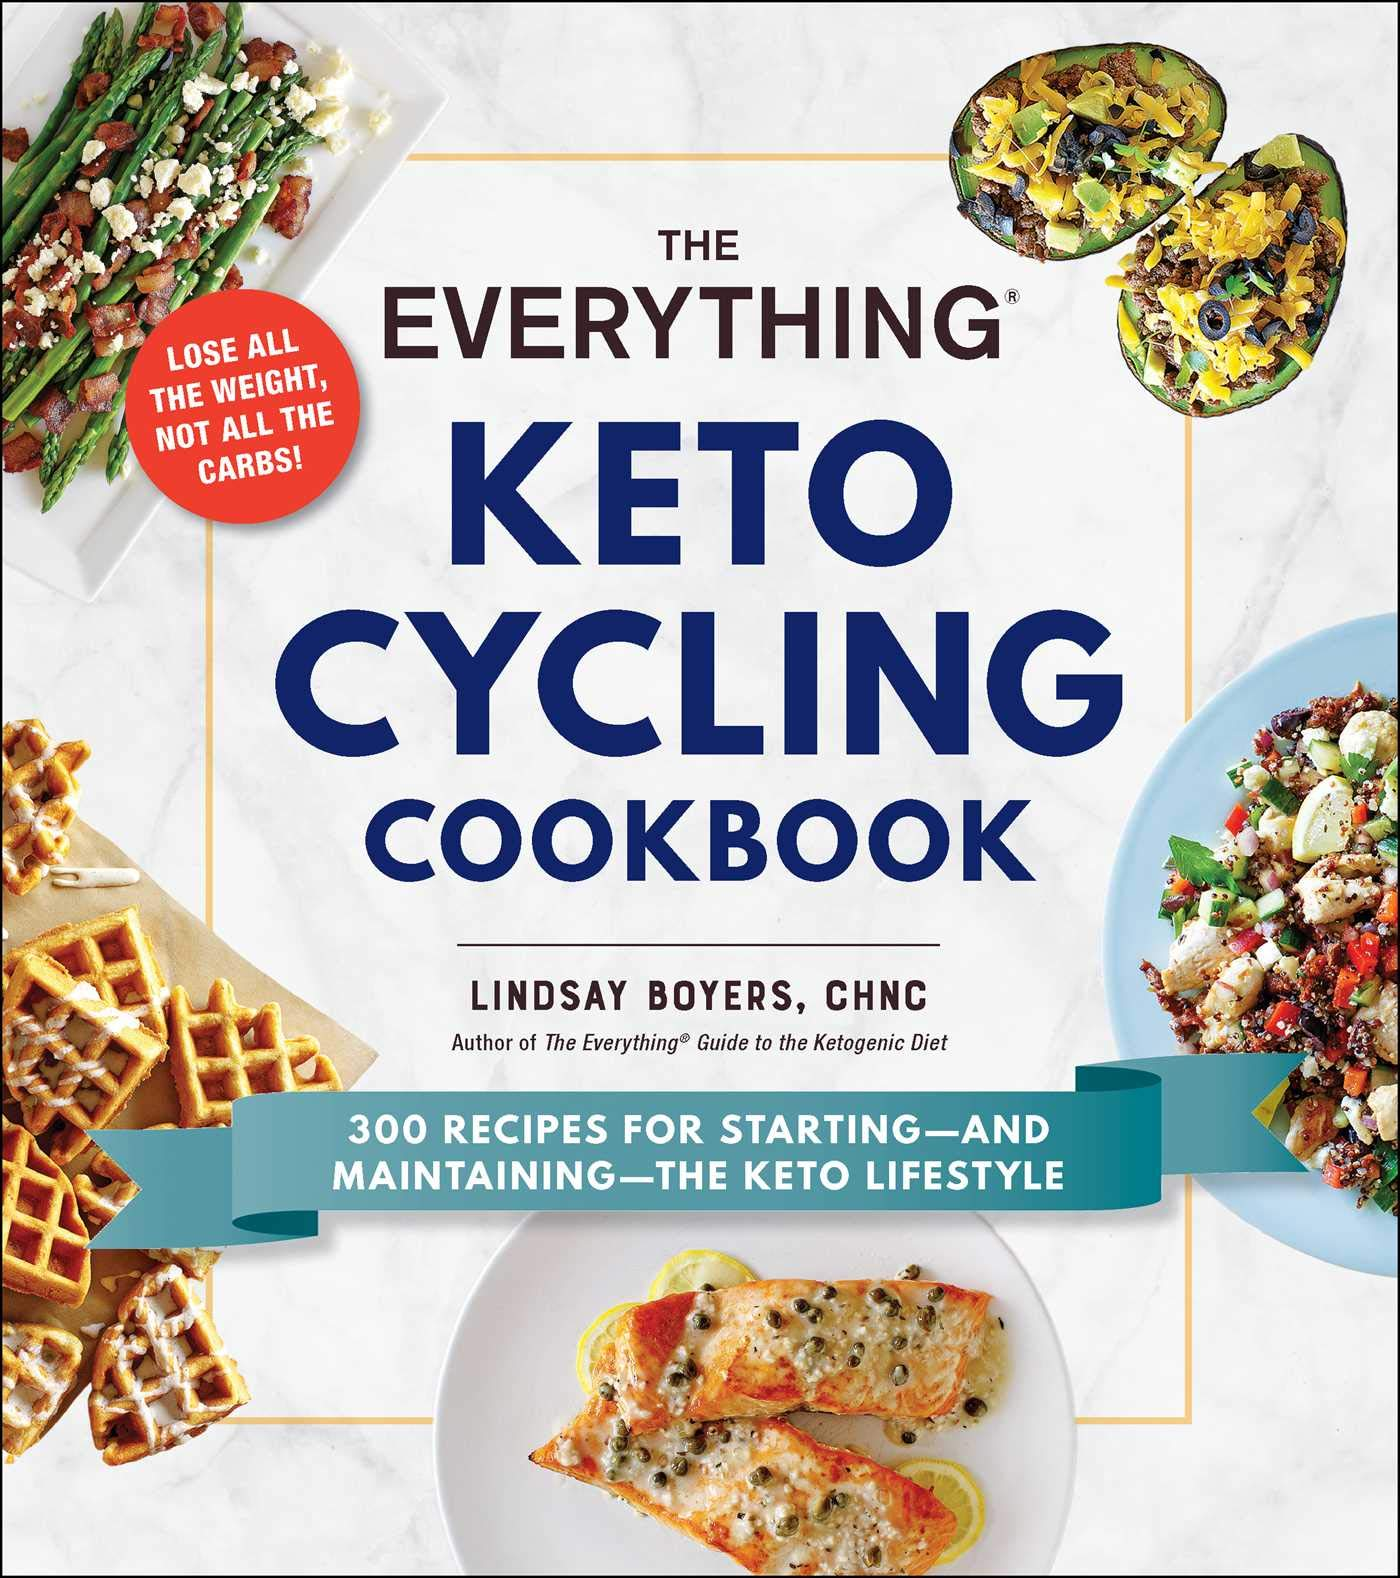 The Everything Keto Cycling Cookbook 300 Recipes For Starting And Maintaining The Keto Lifestyle Boyers Lindsay 9781507210598 Amazon Com Books